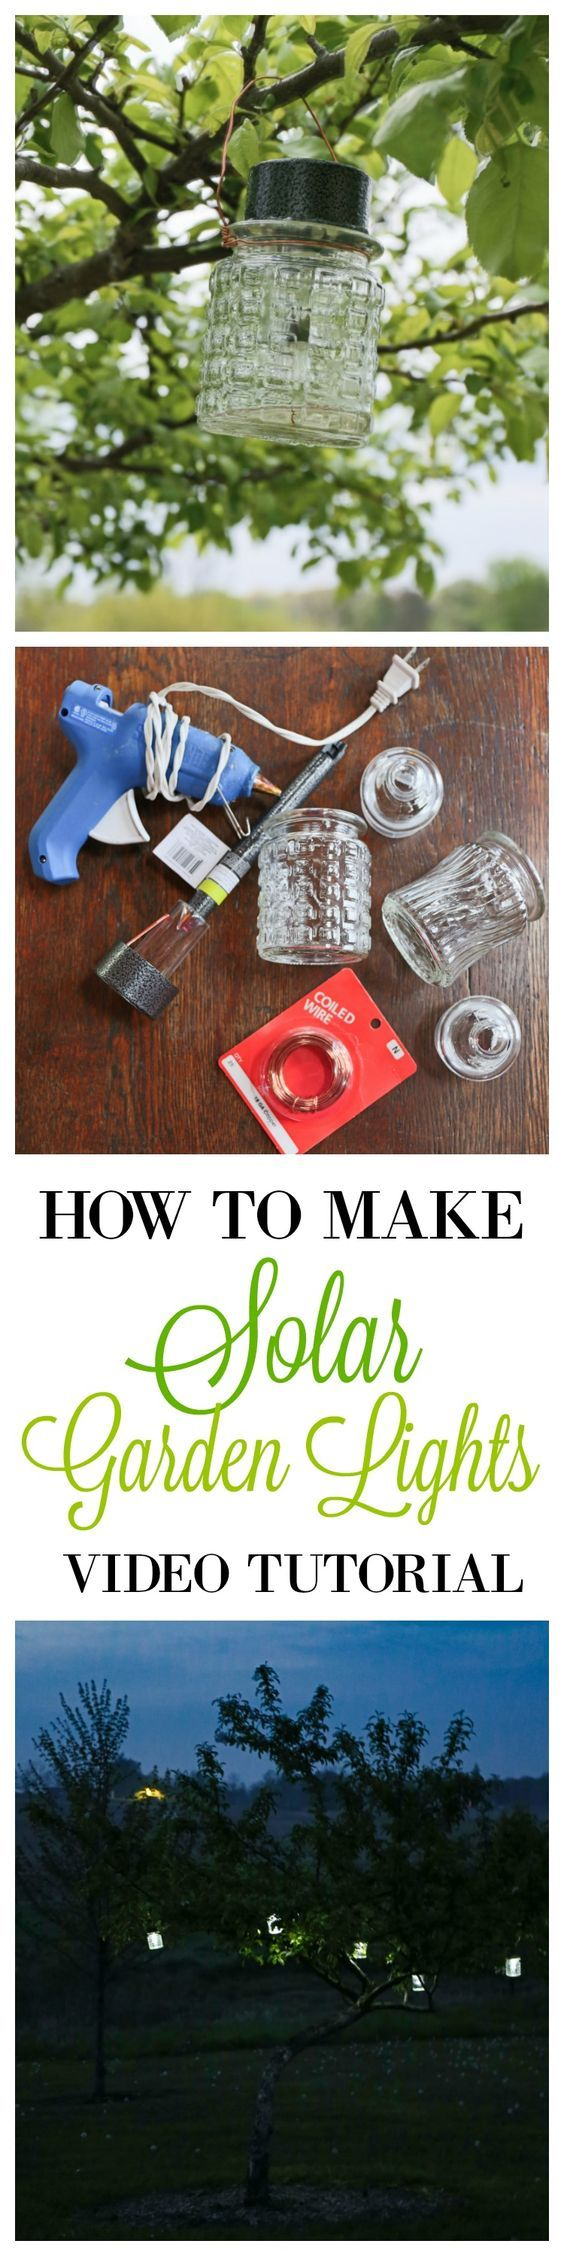 I decided to make my own solar powered garden lights using things found at the Dollar Tree. I stumbled upon the cut glass jars in the cosmetic section and was happy to find the solar garden stakes fit on top perfectly. I though the pattern on the jars would give off pretty reflection on the trees. They remind me of vintage salt and pepper shakers.: